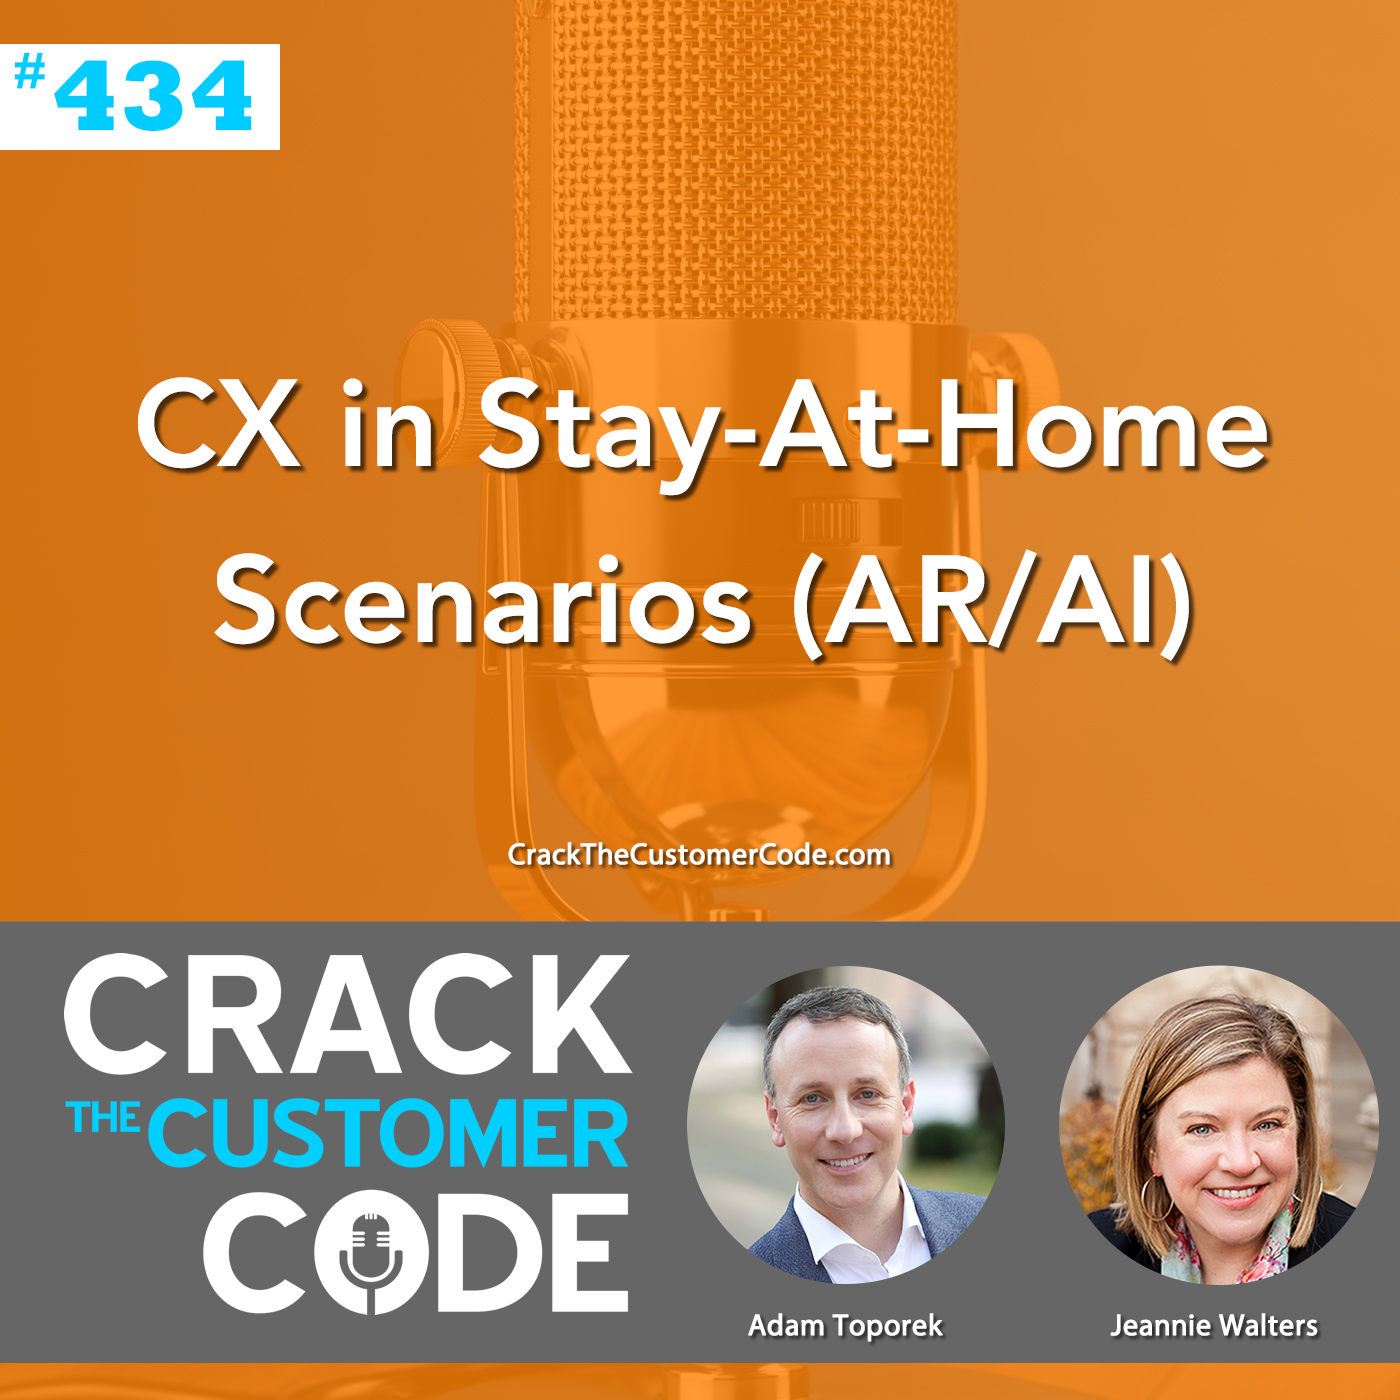 434: CX in Stay-At-Home Scenarios (AR/AI)